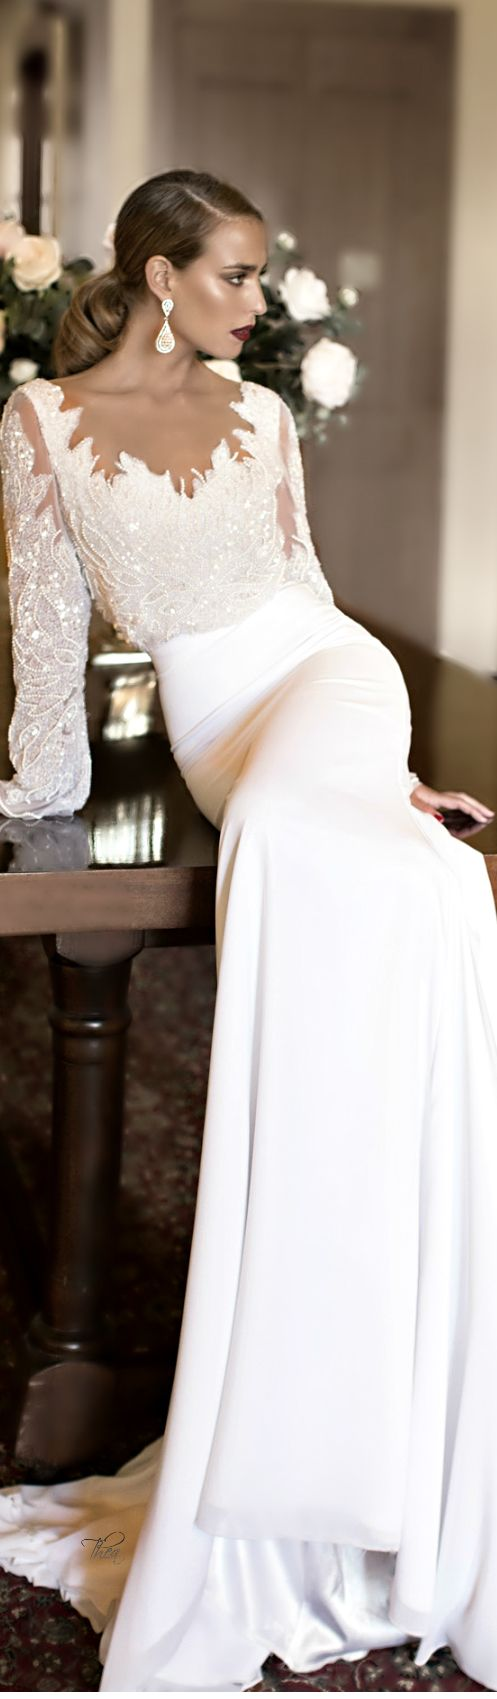 Casual wedding dresses for winter wedding  Stunning White Gown  If I ever get married  Pinterest